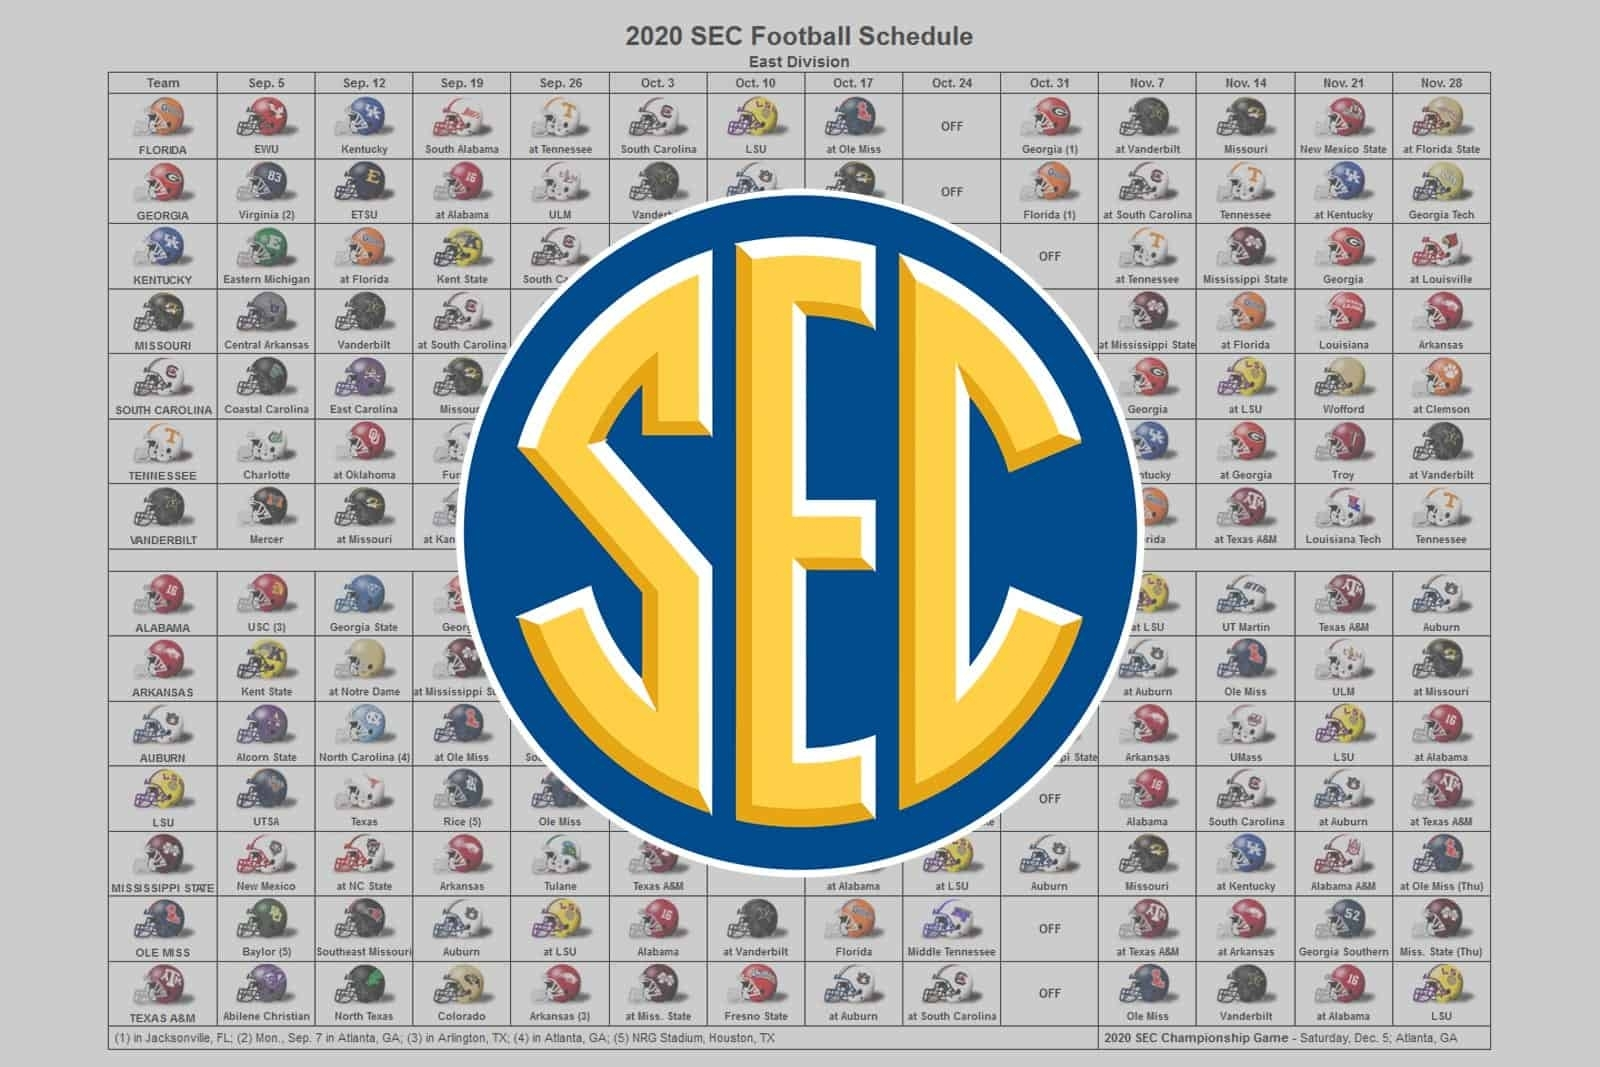 2020 Sec Football Helmet Schedule in Nfl 2019 2020 Printable Schedule